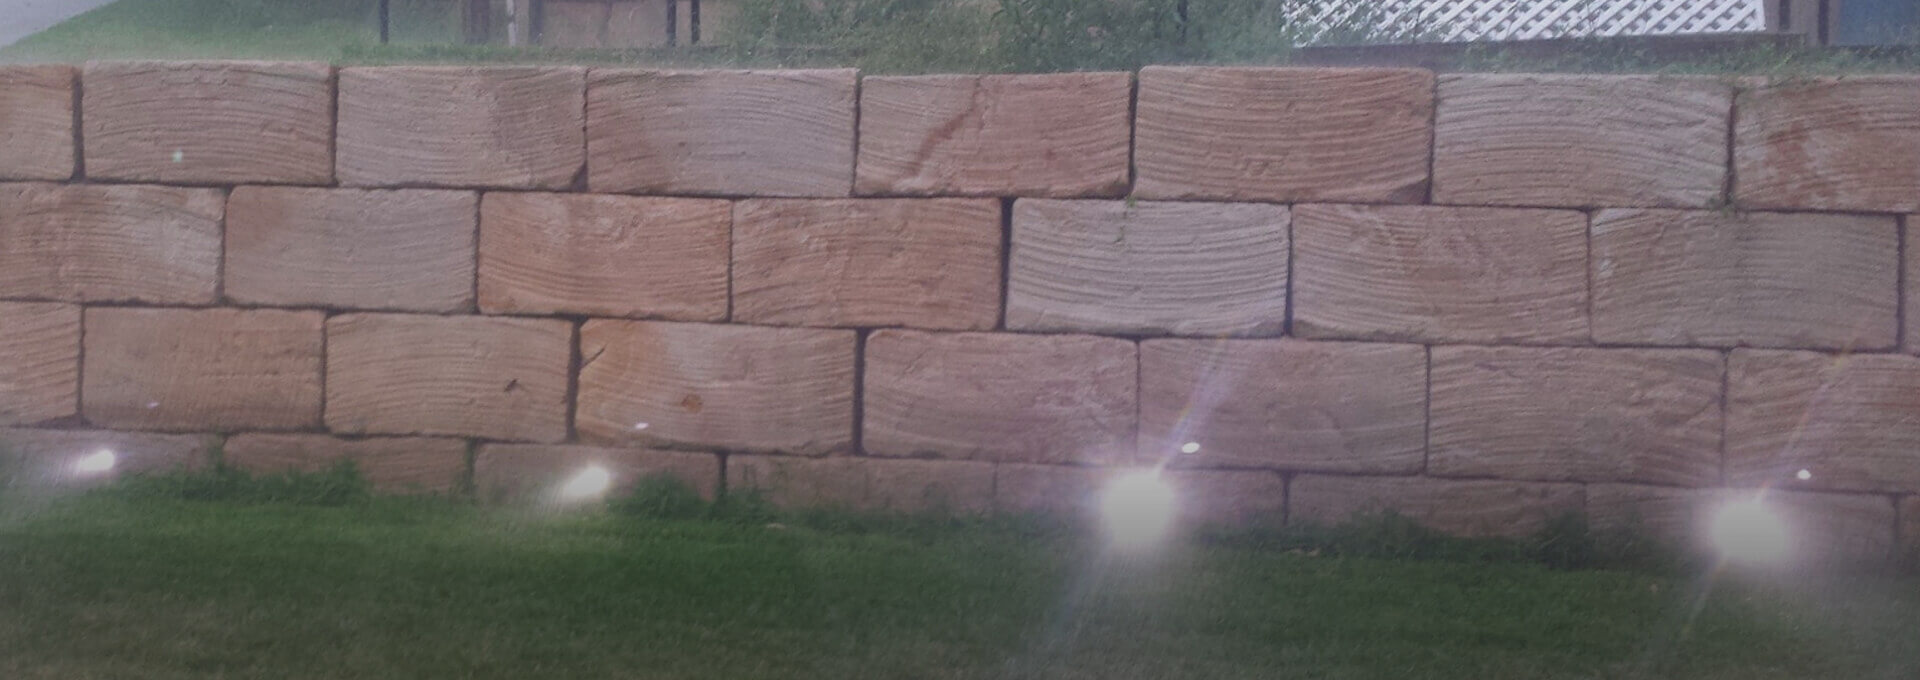 Sandstone Masonry Walls and Architecture Brisbane Rock Sales